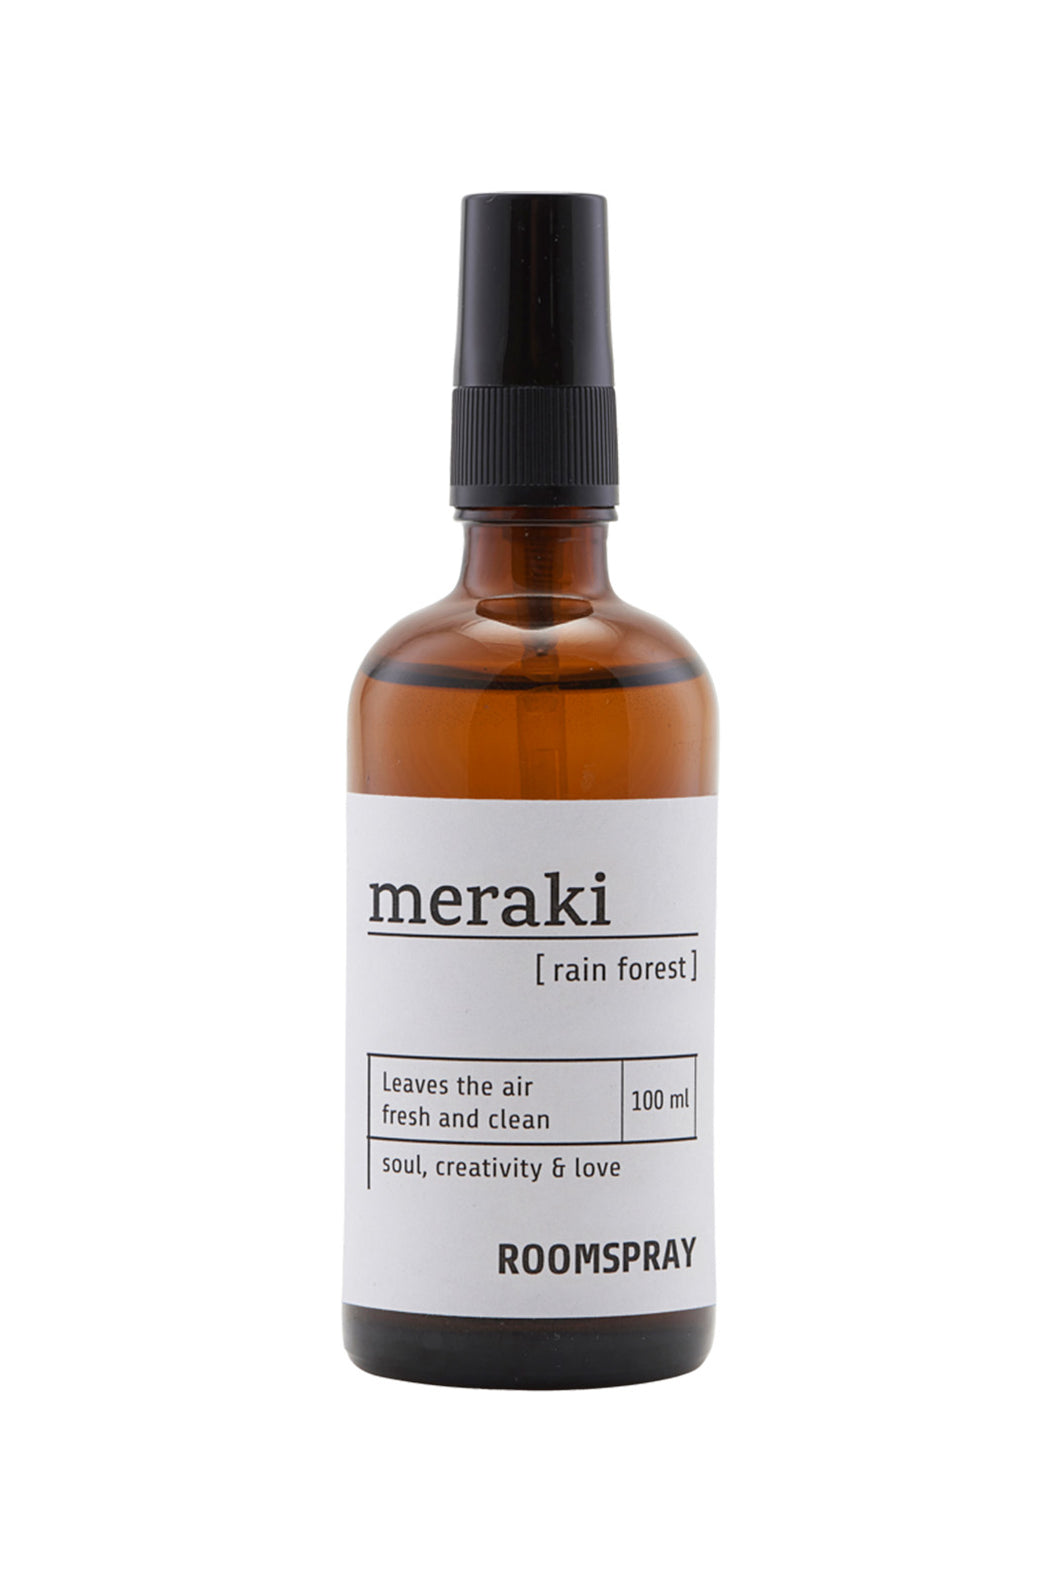 Meraki - Roomspray - 100ml - Rainforest